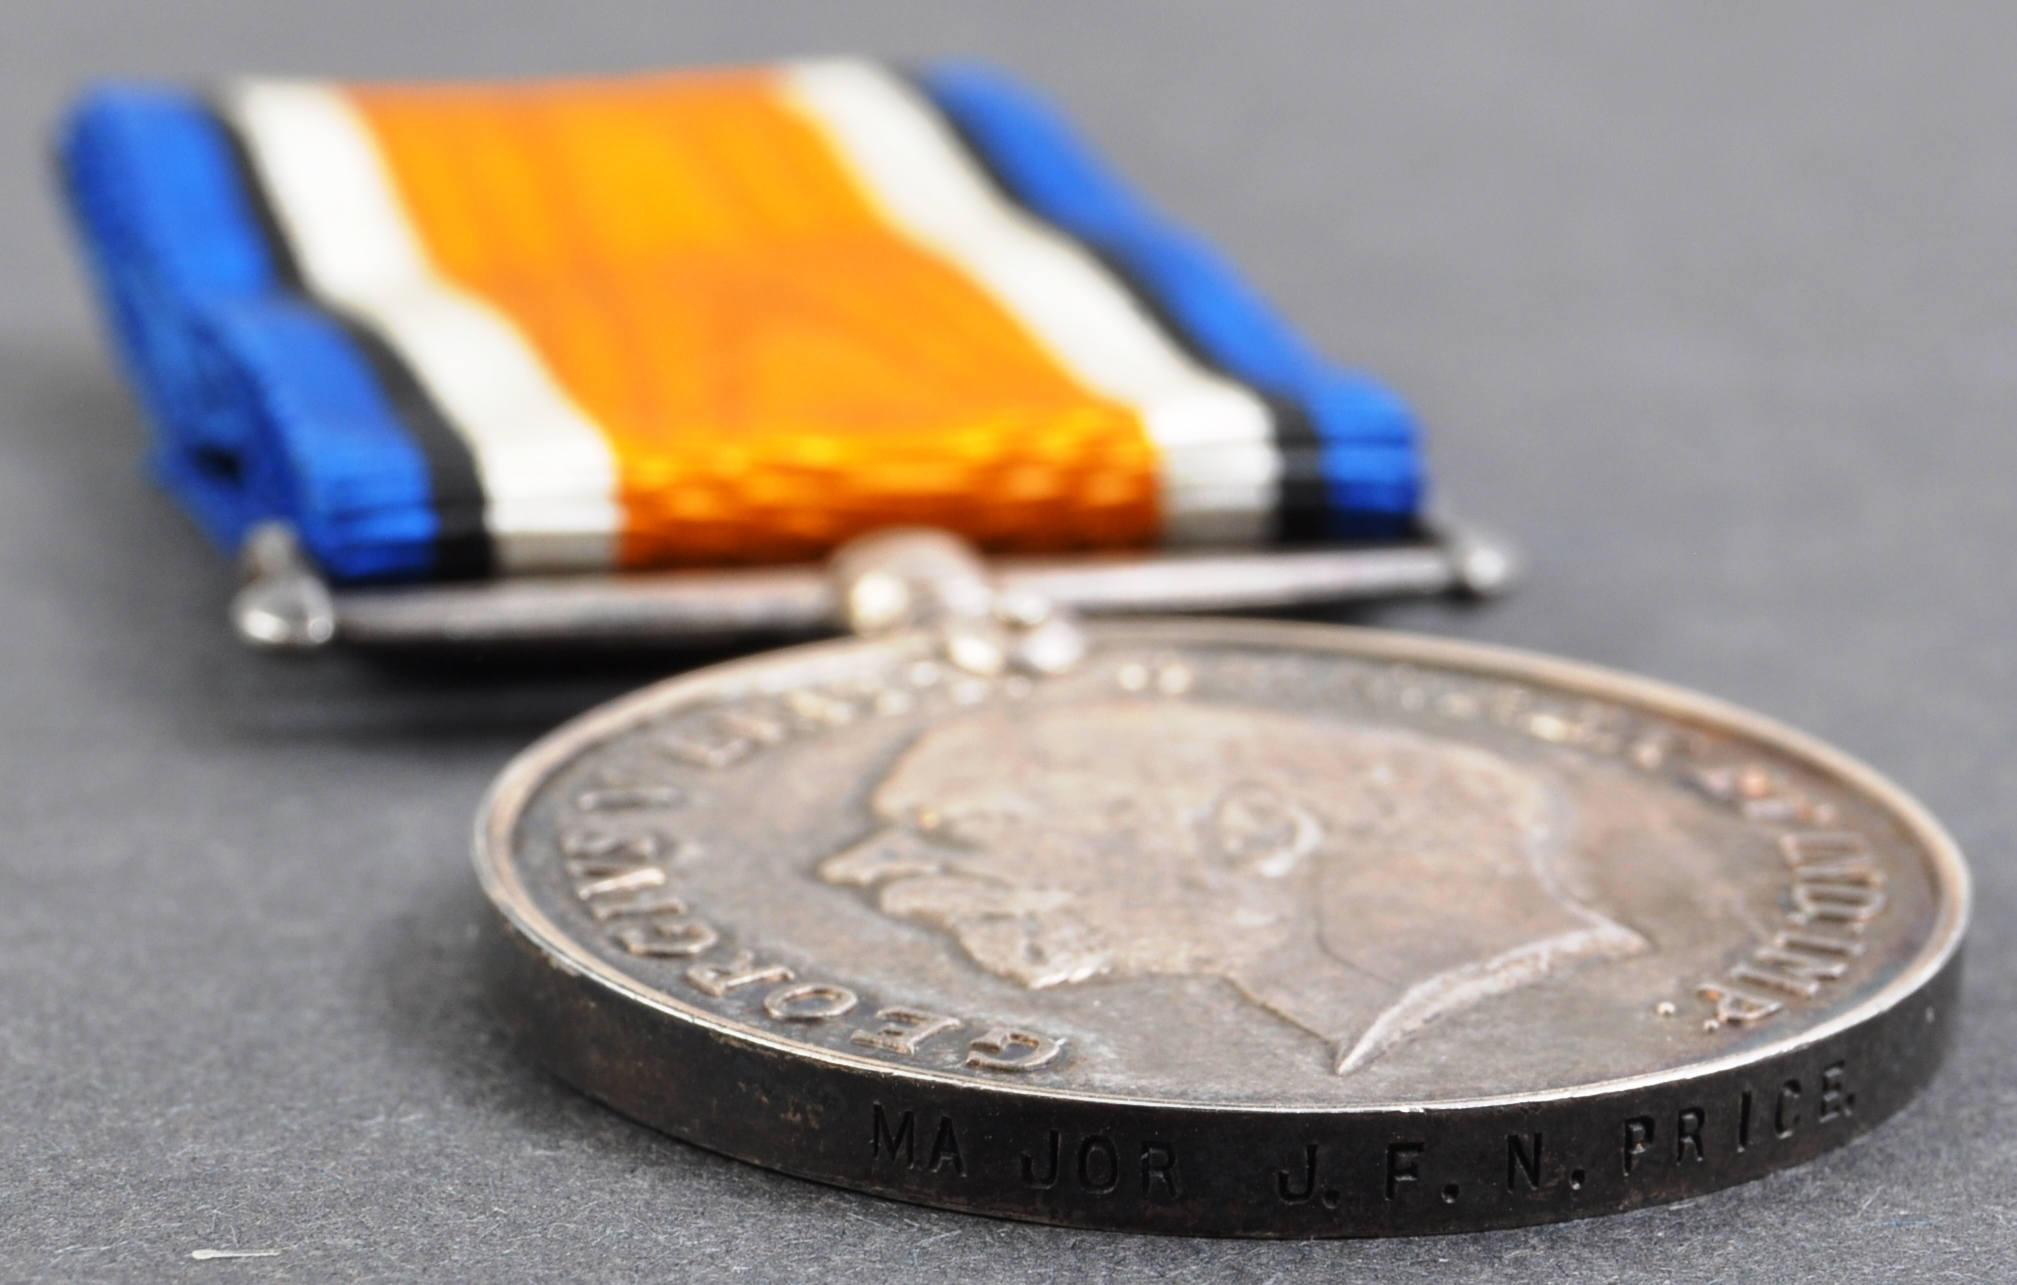 WWI FIRST WORLD WAR MEDAL TO A MAJOR J. F. N. PRICE - Image 3 of 4